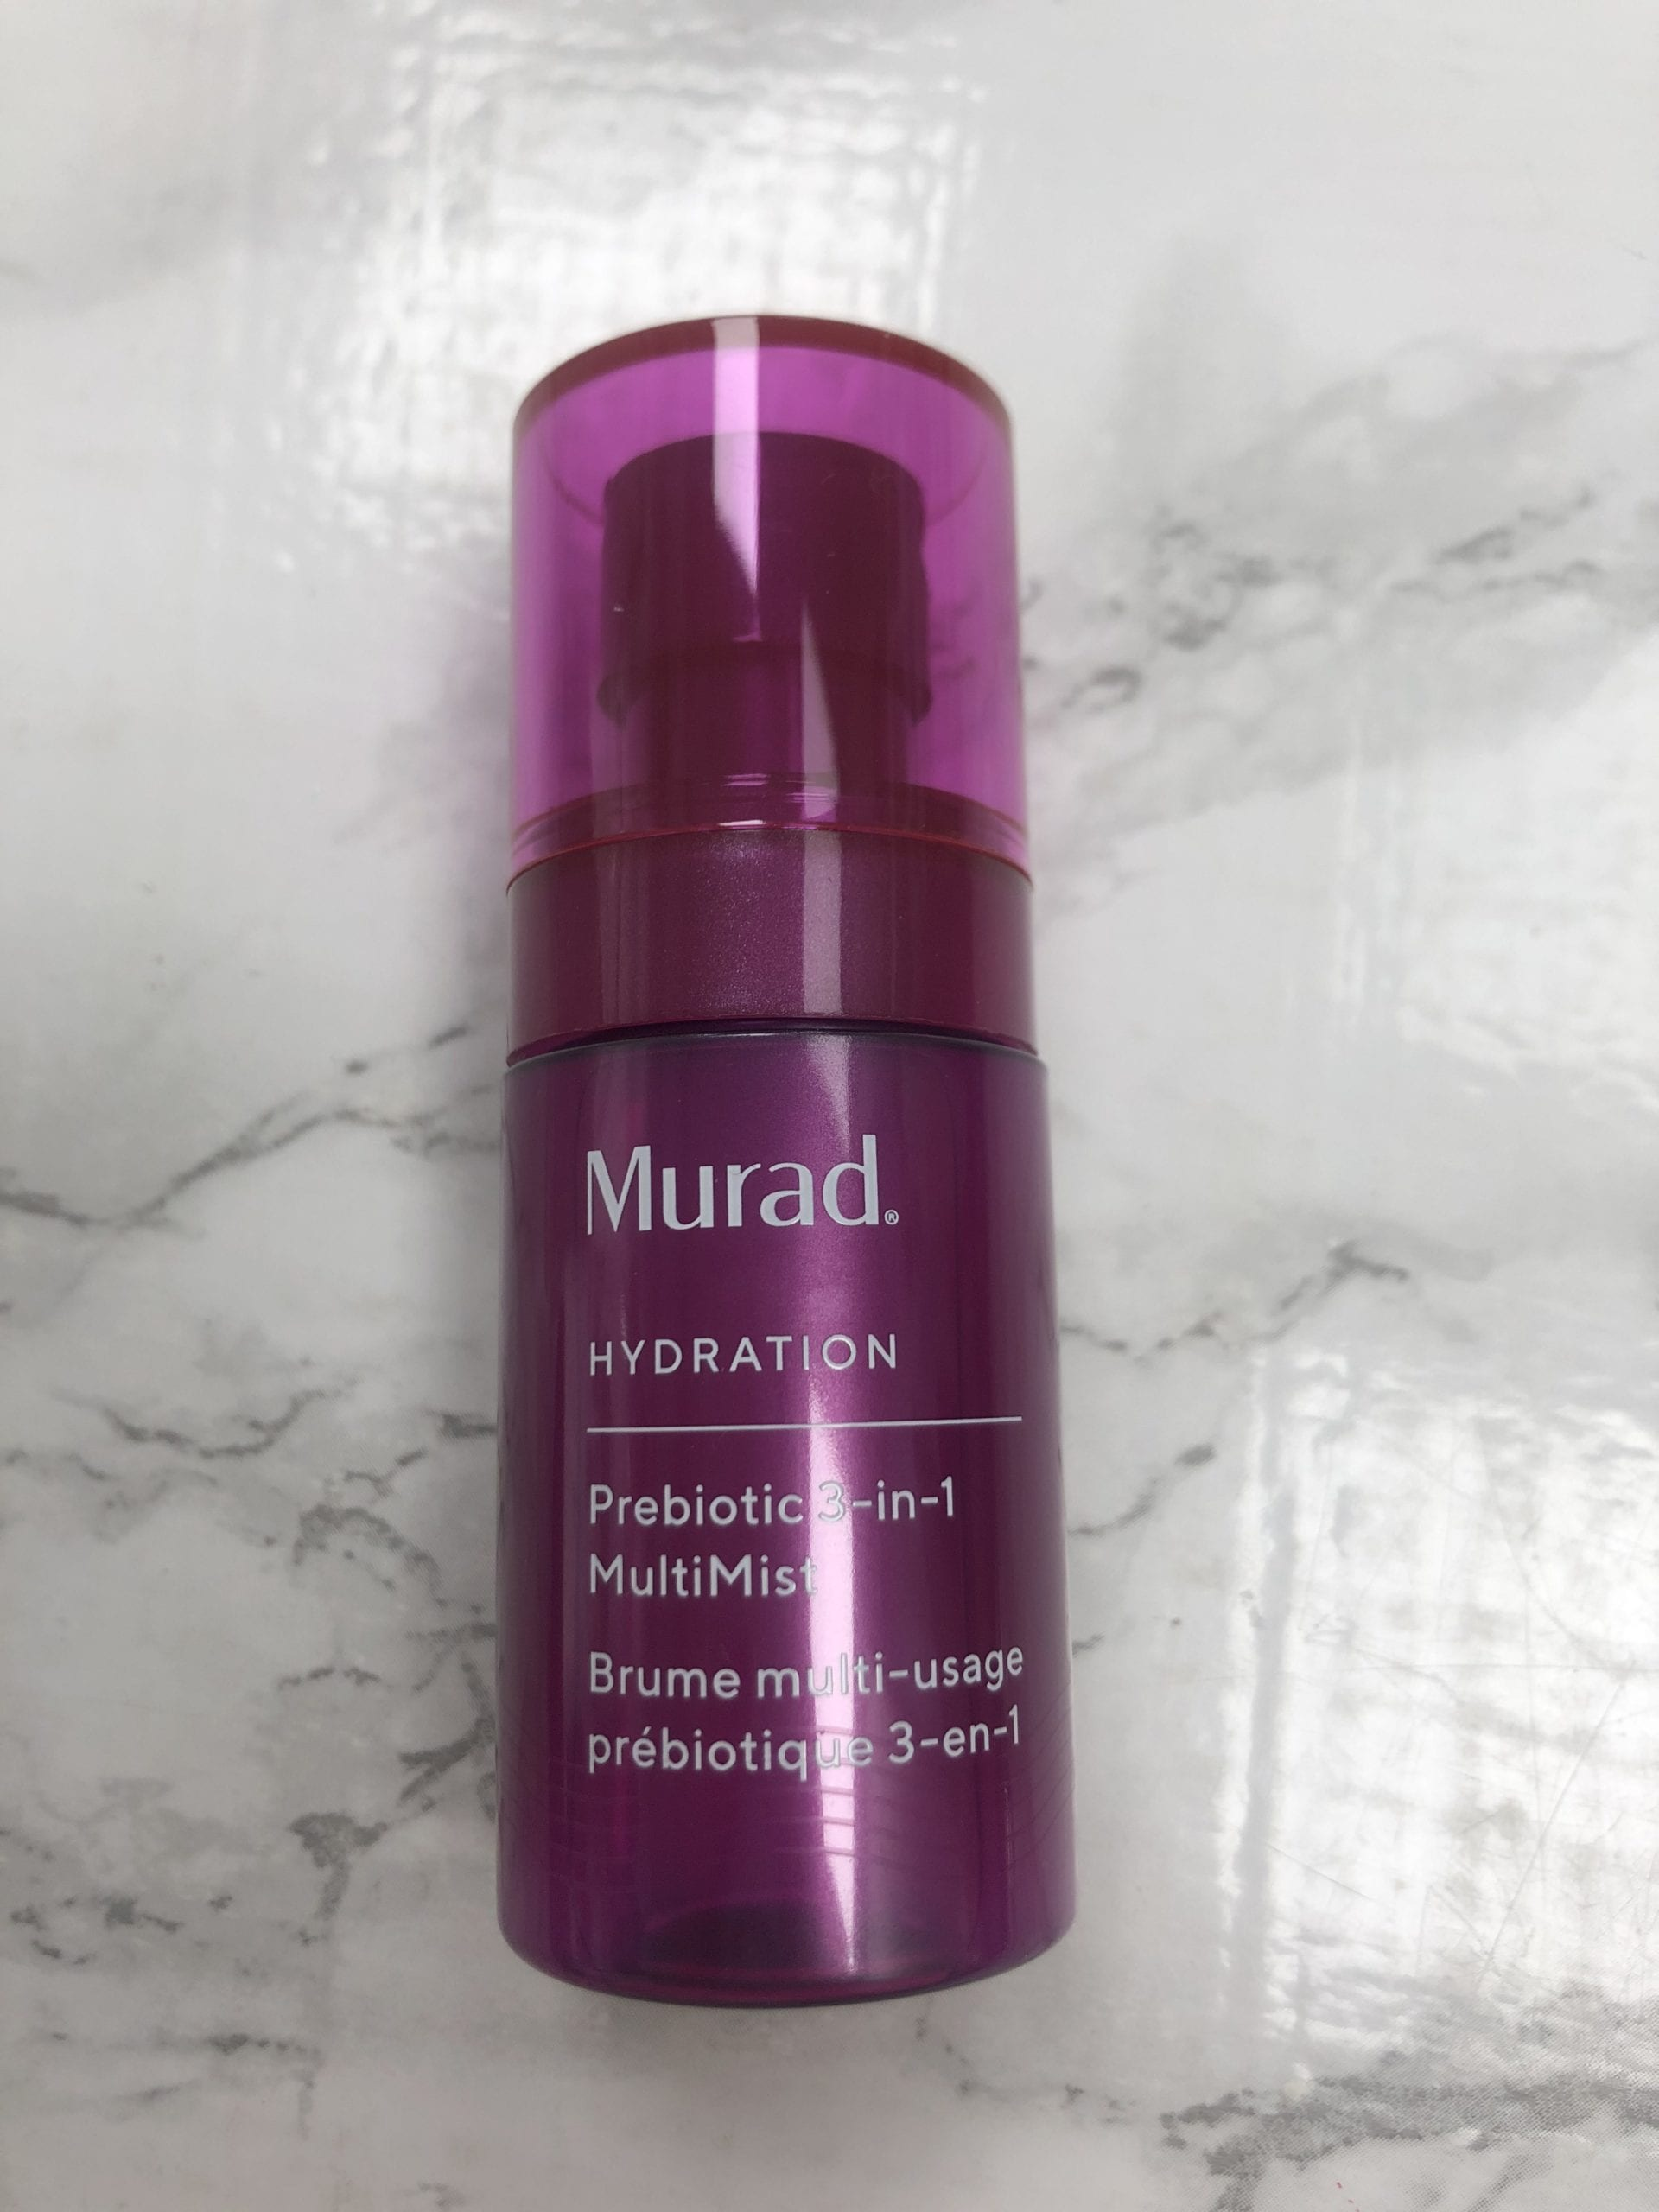 Murad Prebiotic 3-in1 Multimist 30ml (travel size)